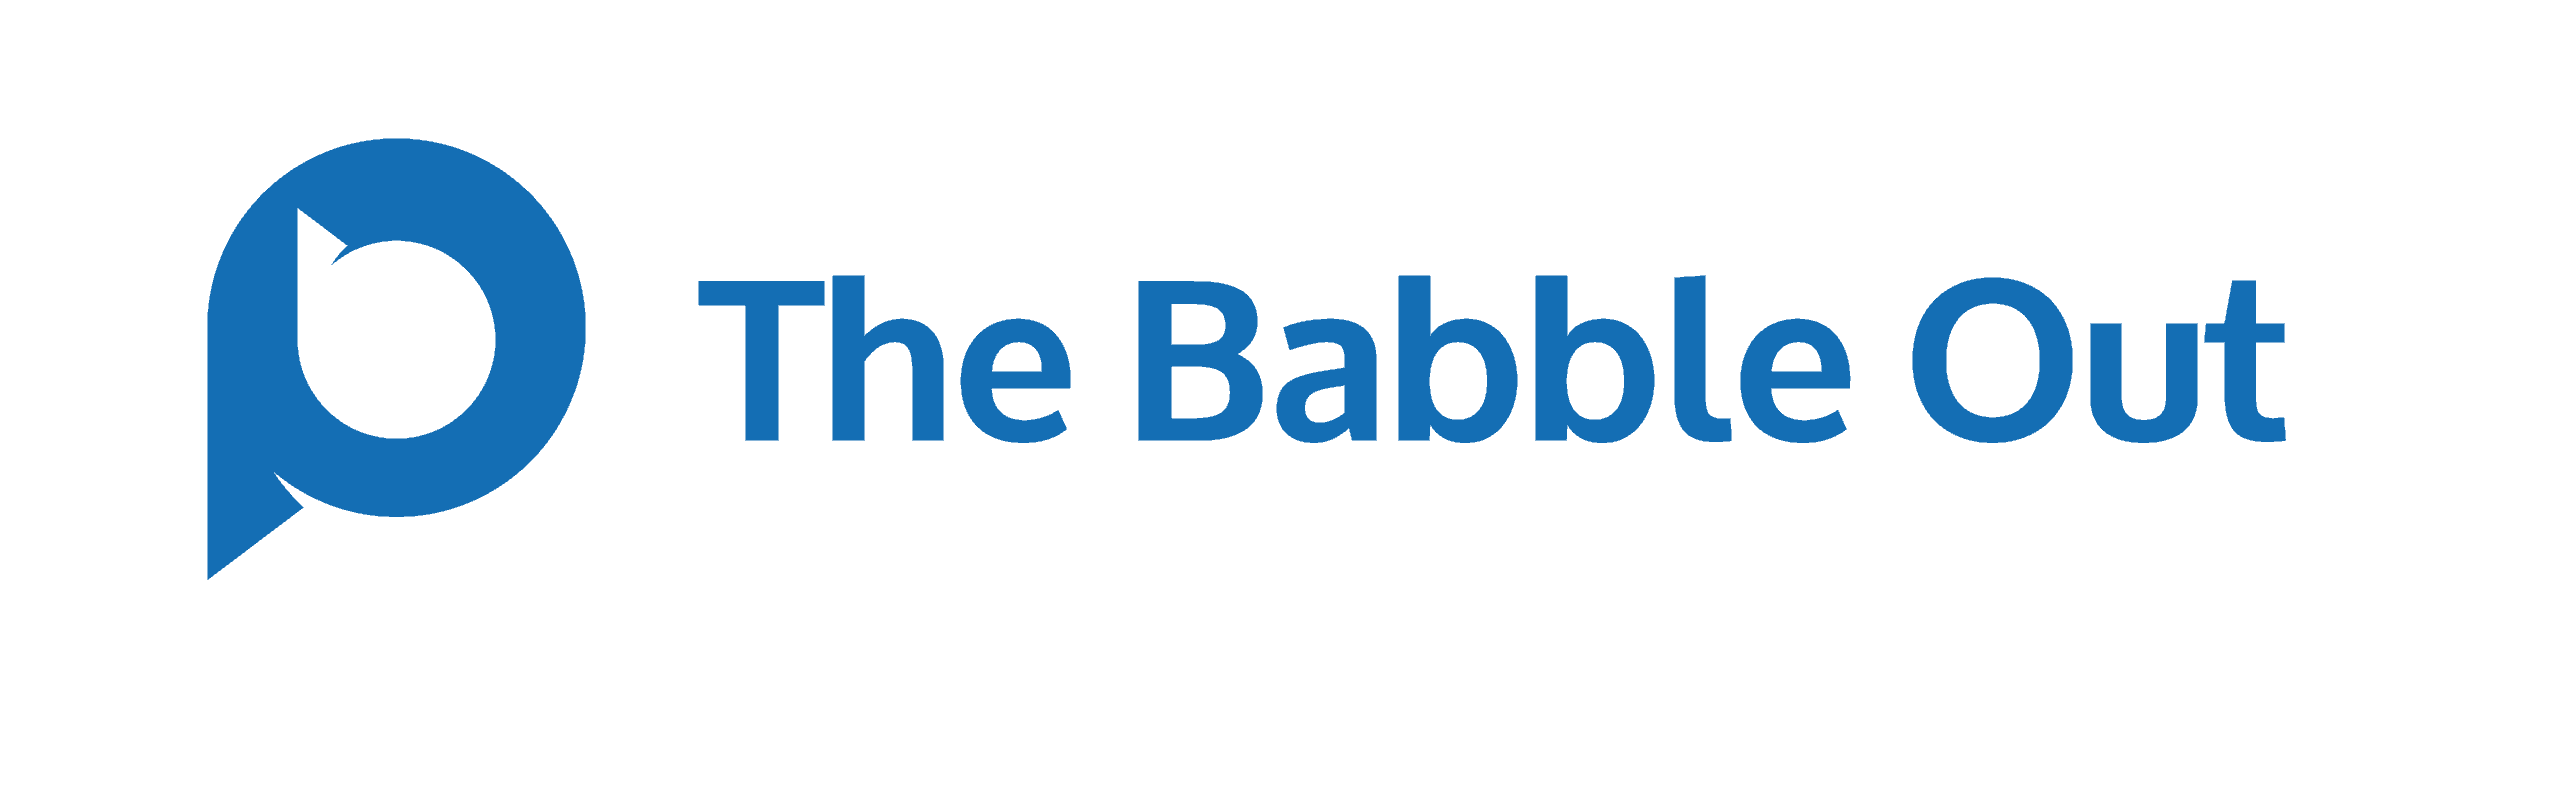 The Babble Out